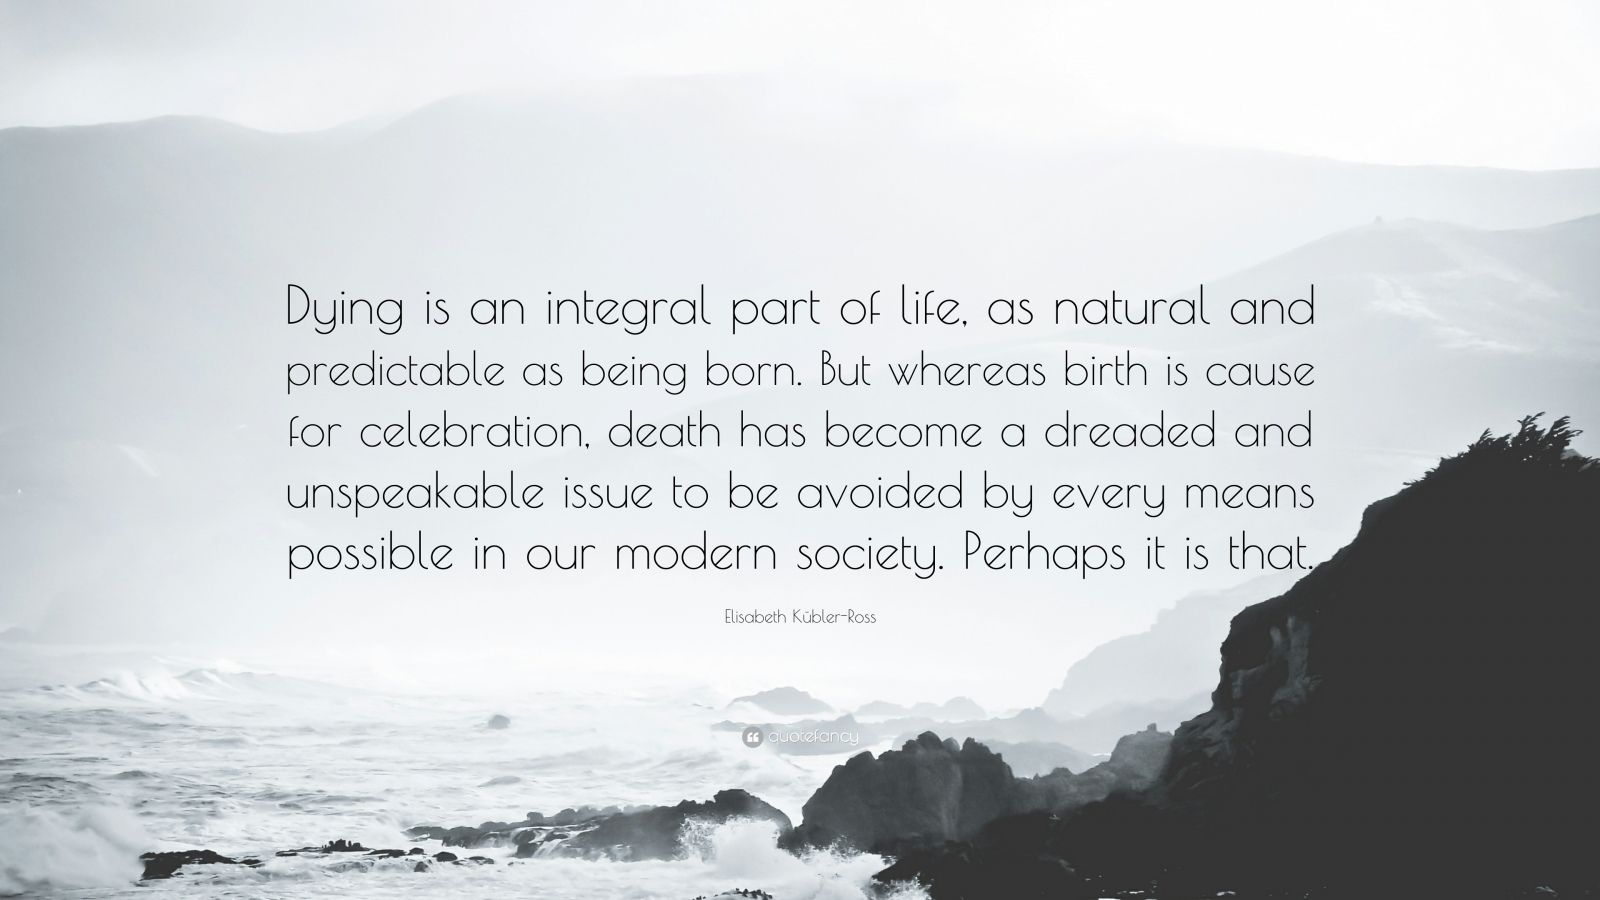 """Elisabeth Kübler-Ross Quote: """"Dying is an integral part of life, as natural and predictable as being born. But whereas birth is cause for celebration, death has become a dreaded and unspeakable issue to be avoided by every means possible in our modern society. Perhaps it is that."""""""